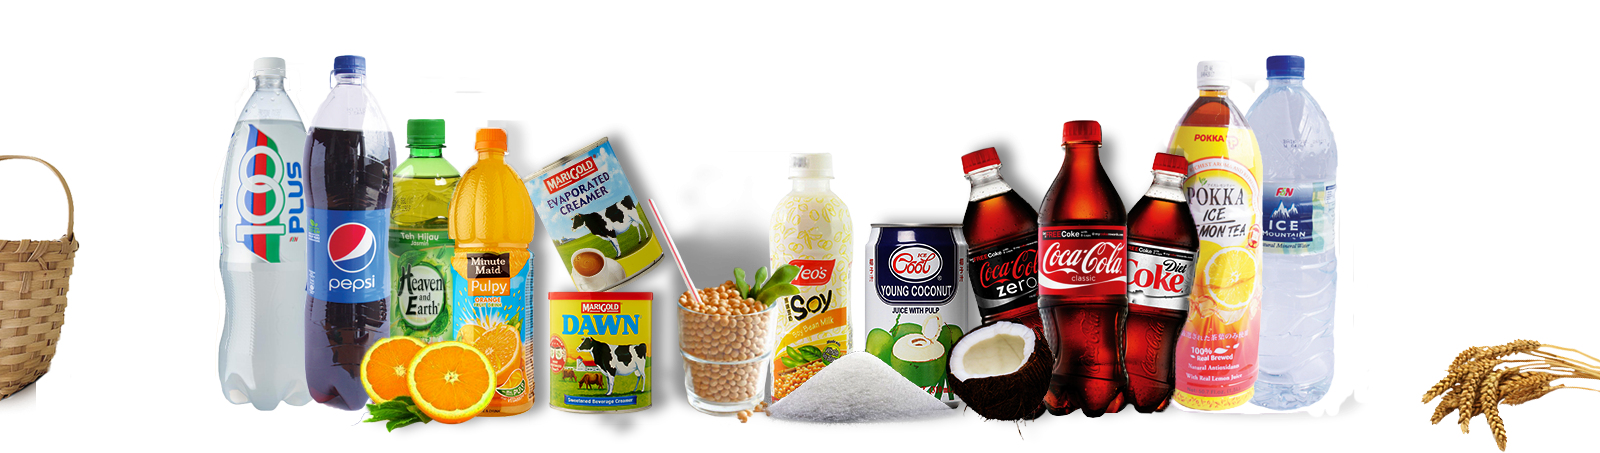 Singapore No.1 Beverages Supplier & Drinks Wholesaler! FREE Delivery for orders above $99!